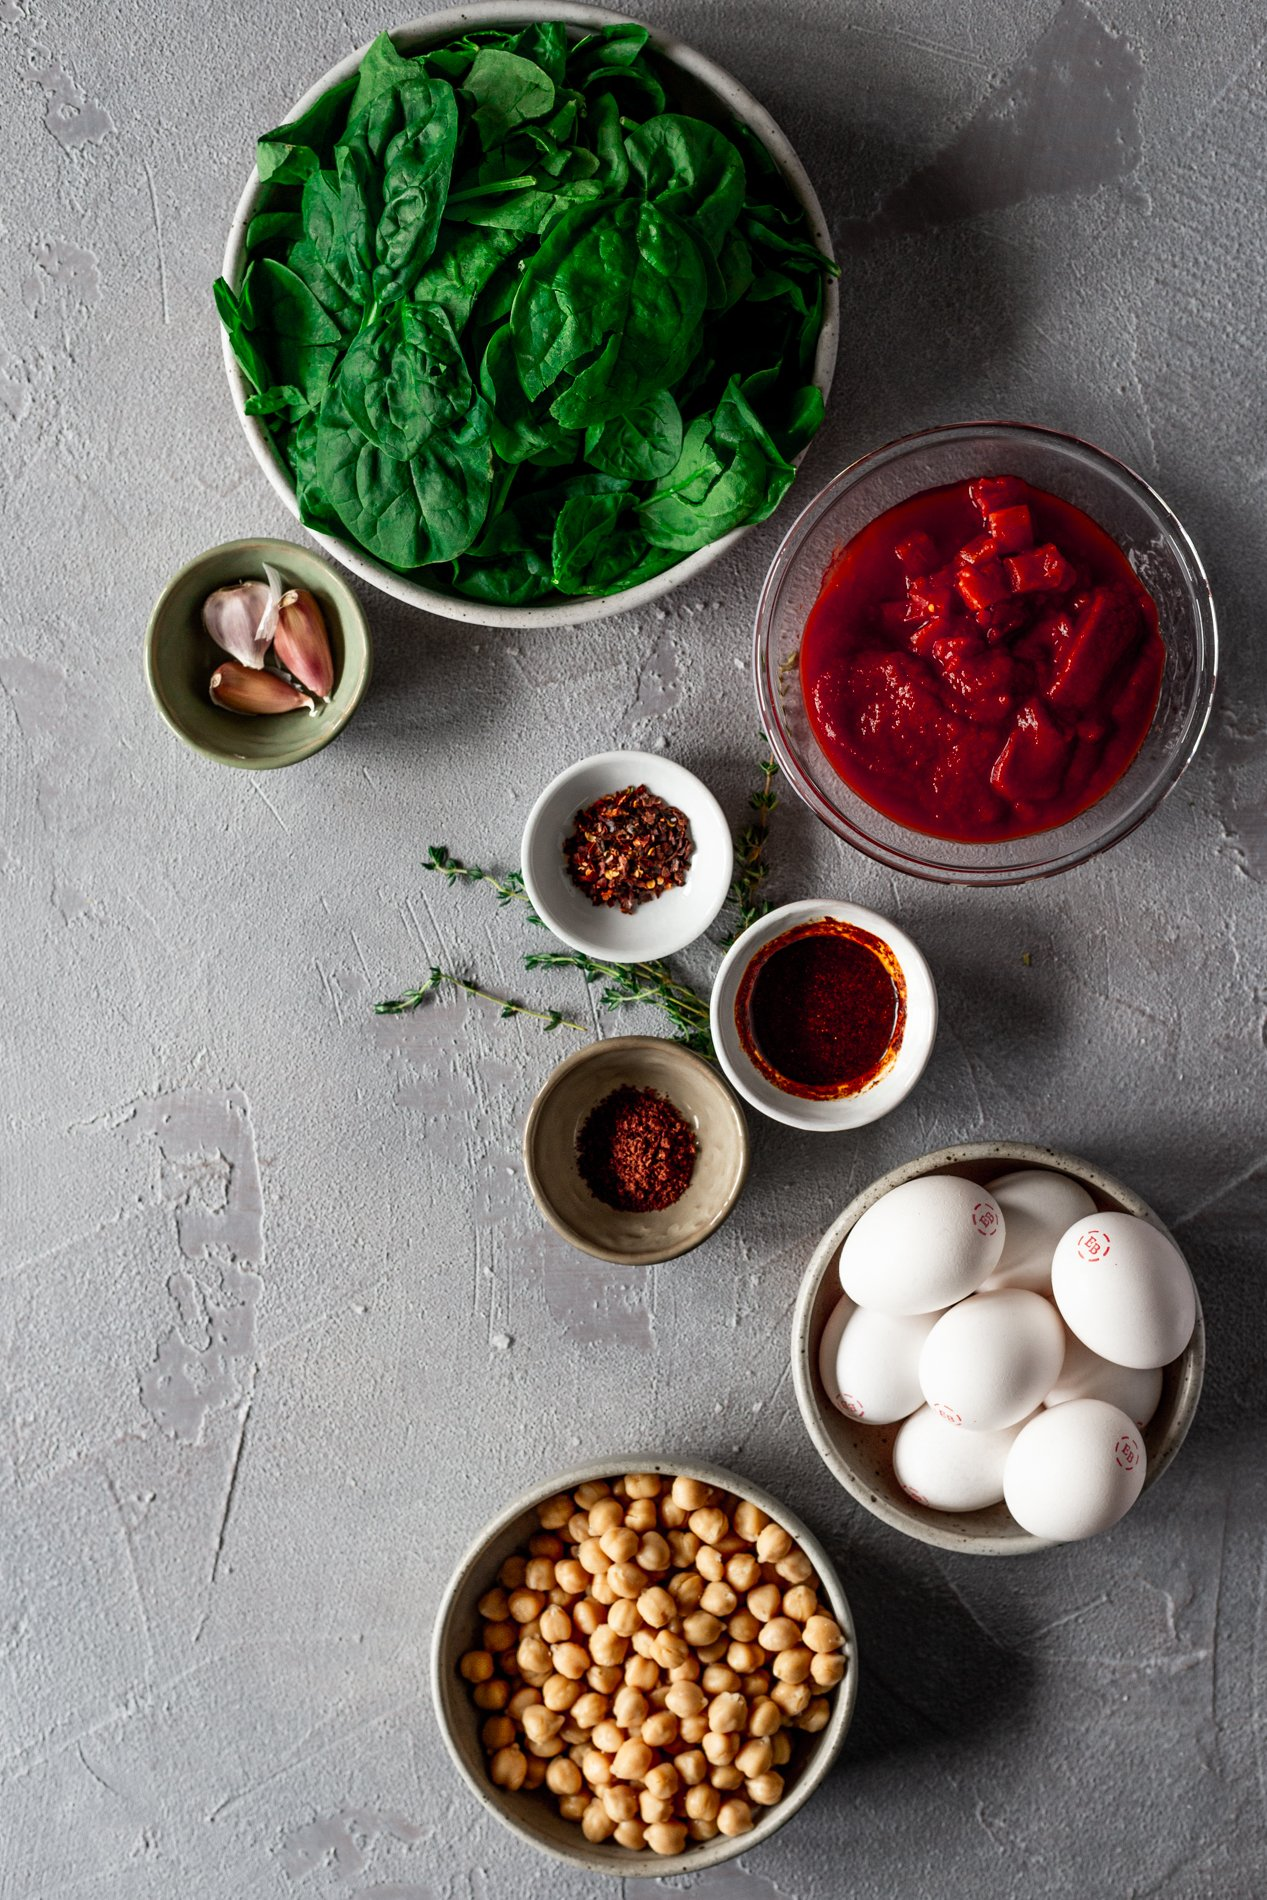 overhead view of bowls of ingredients for harissa baked eggs: spinach, tinned tomatoes, garlic cloves, red pepper flakes, harissa paste, sumac, eggs, and chickpeas